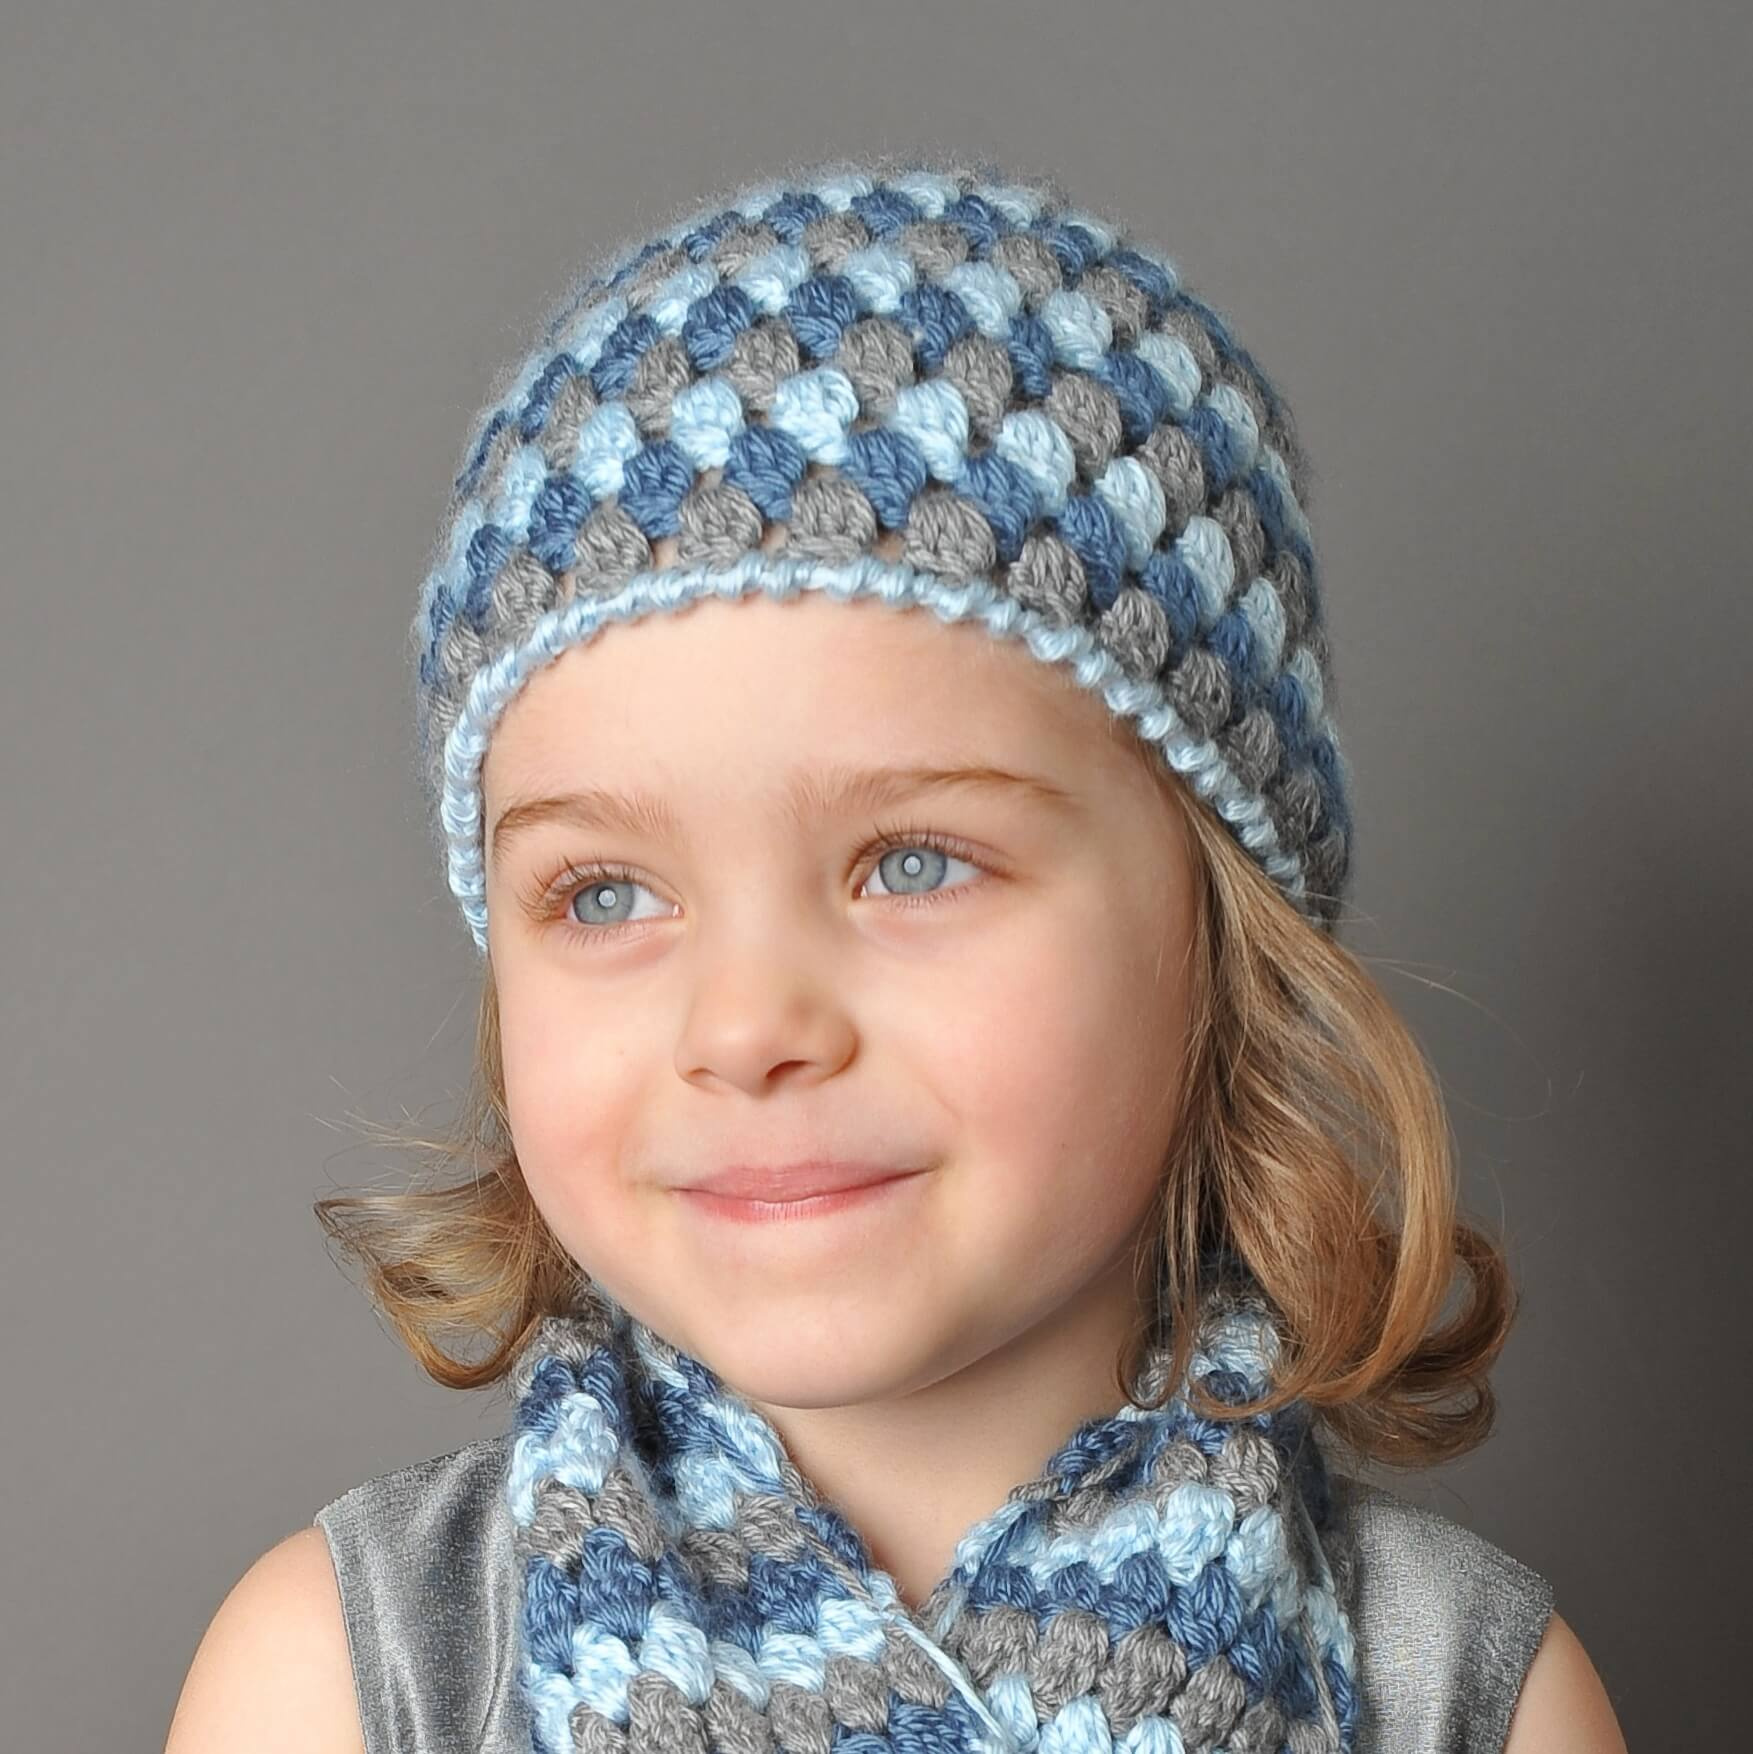 Crochet Pattern For Baby Hat And Scarf : Mod Hat and Scarf Crochet Set - Petals to Picots